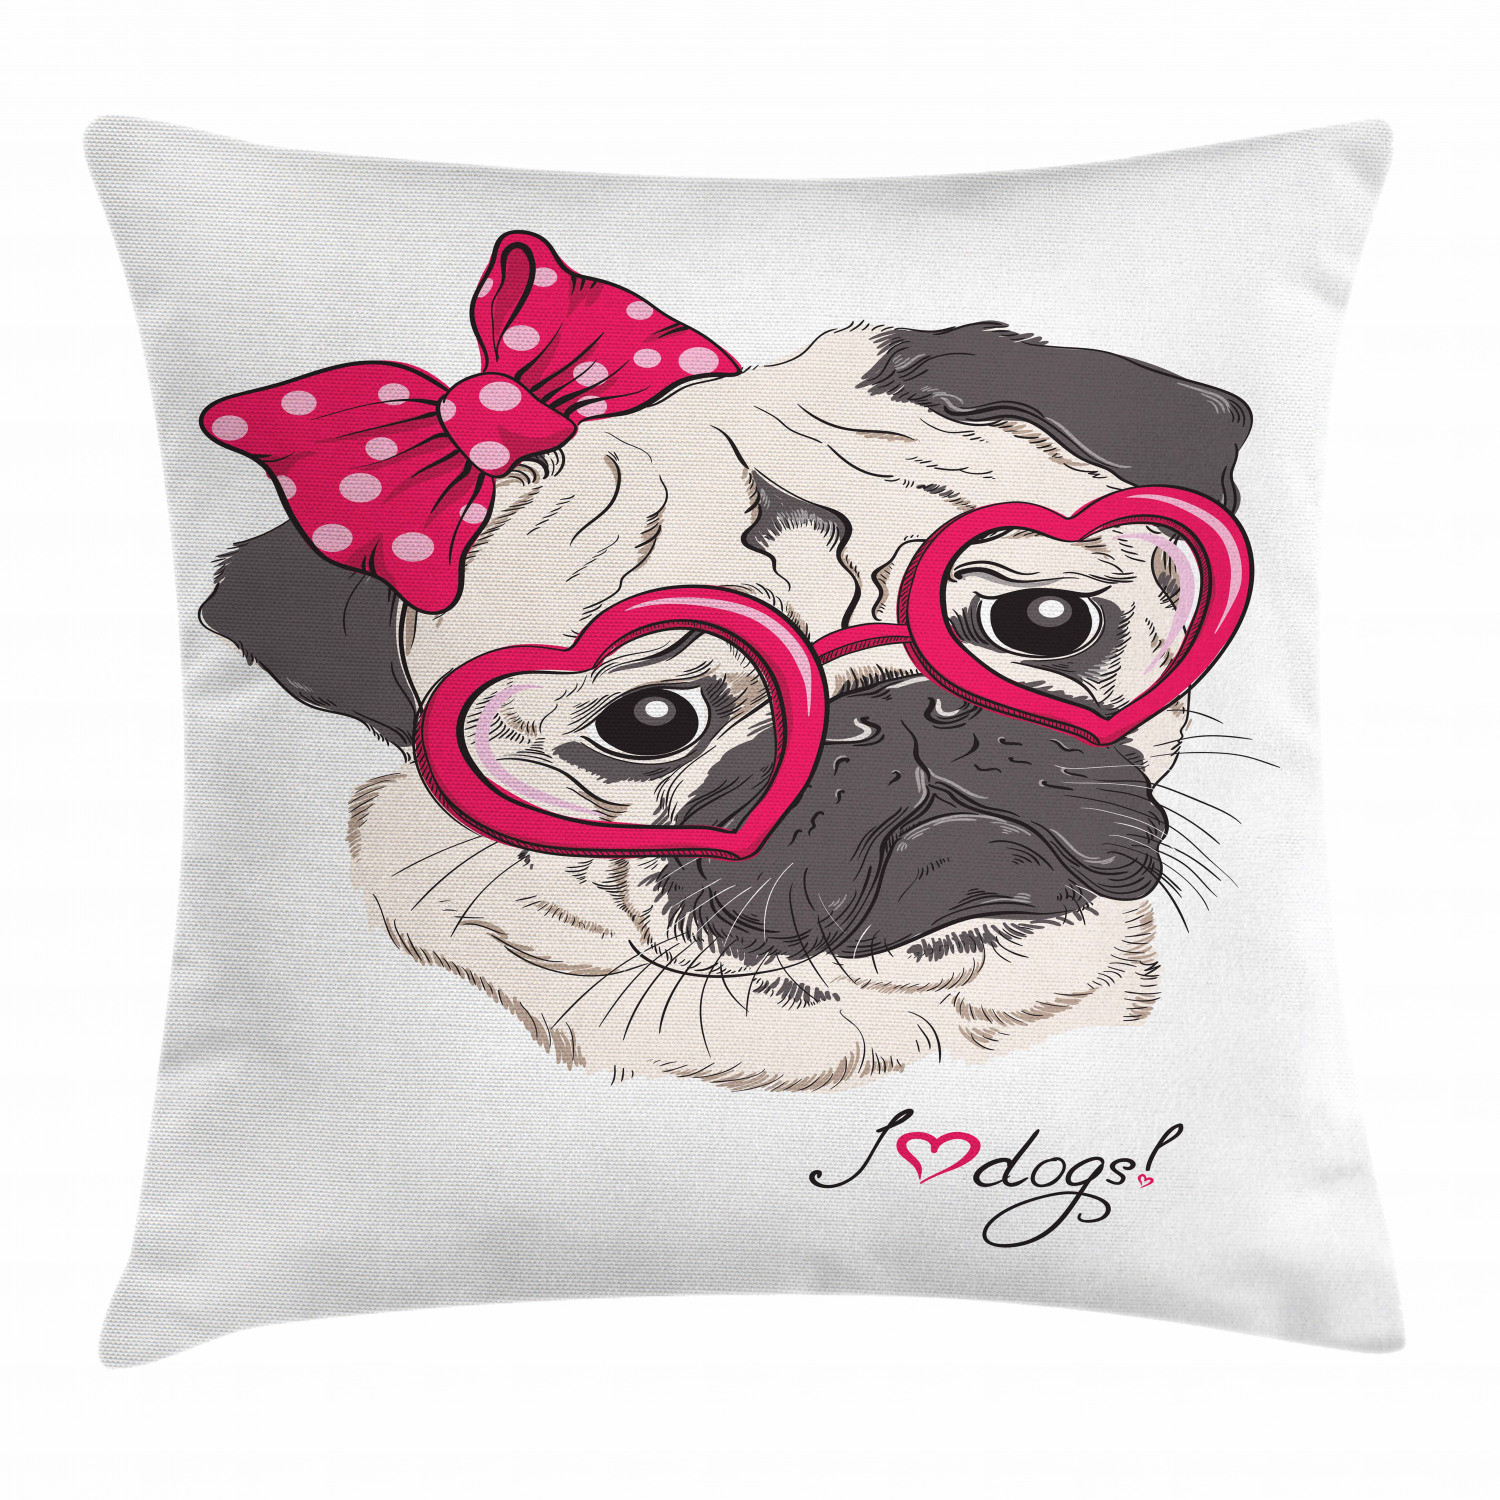 Pug Throw Pillow Cushion Cover Cartoon Style Fashion Portrait Of Hipster Pug Dog With Heart Shaped Glasses Decorative Square Accent Pillow Case 18 X 18 Inches Grey Cream And Magenta By Ambesonne